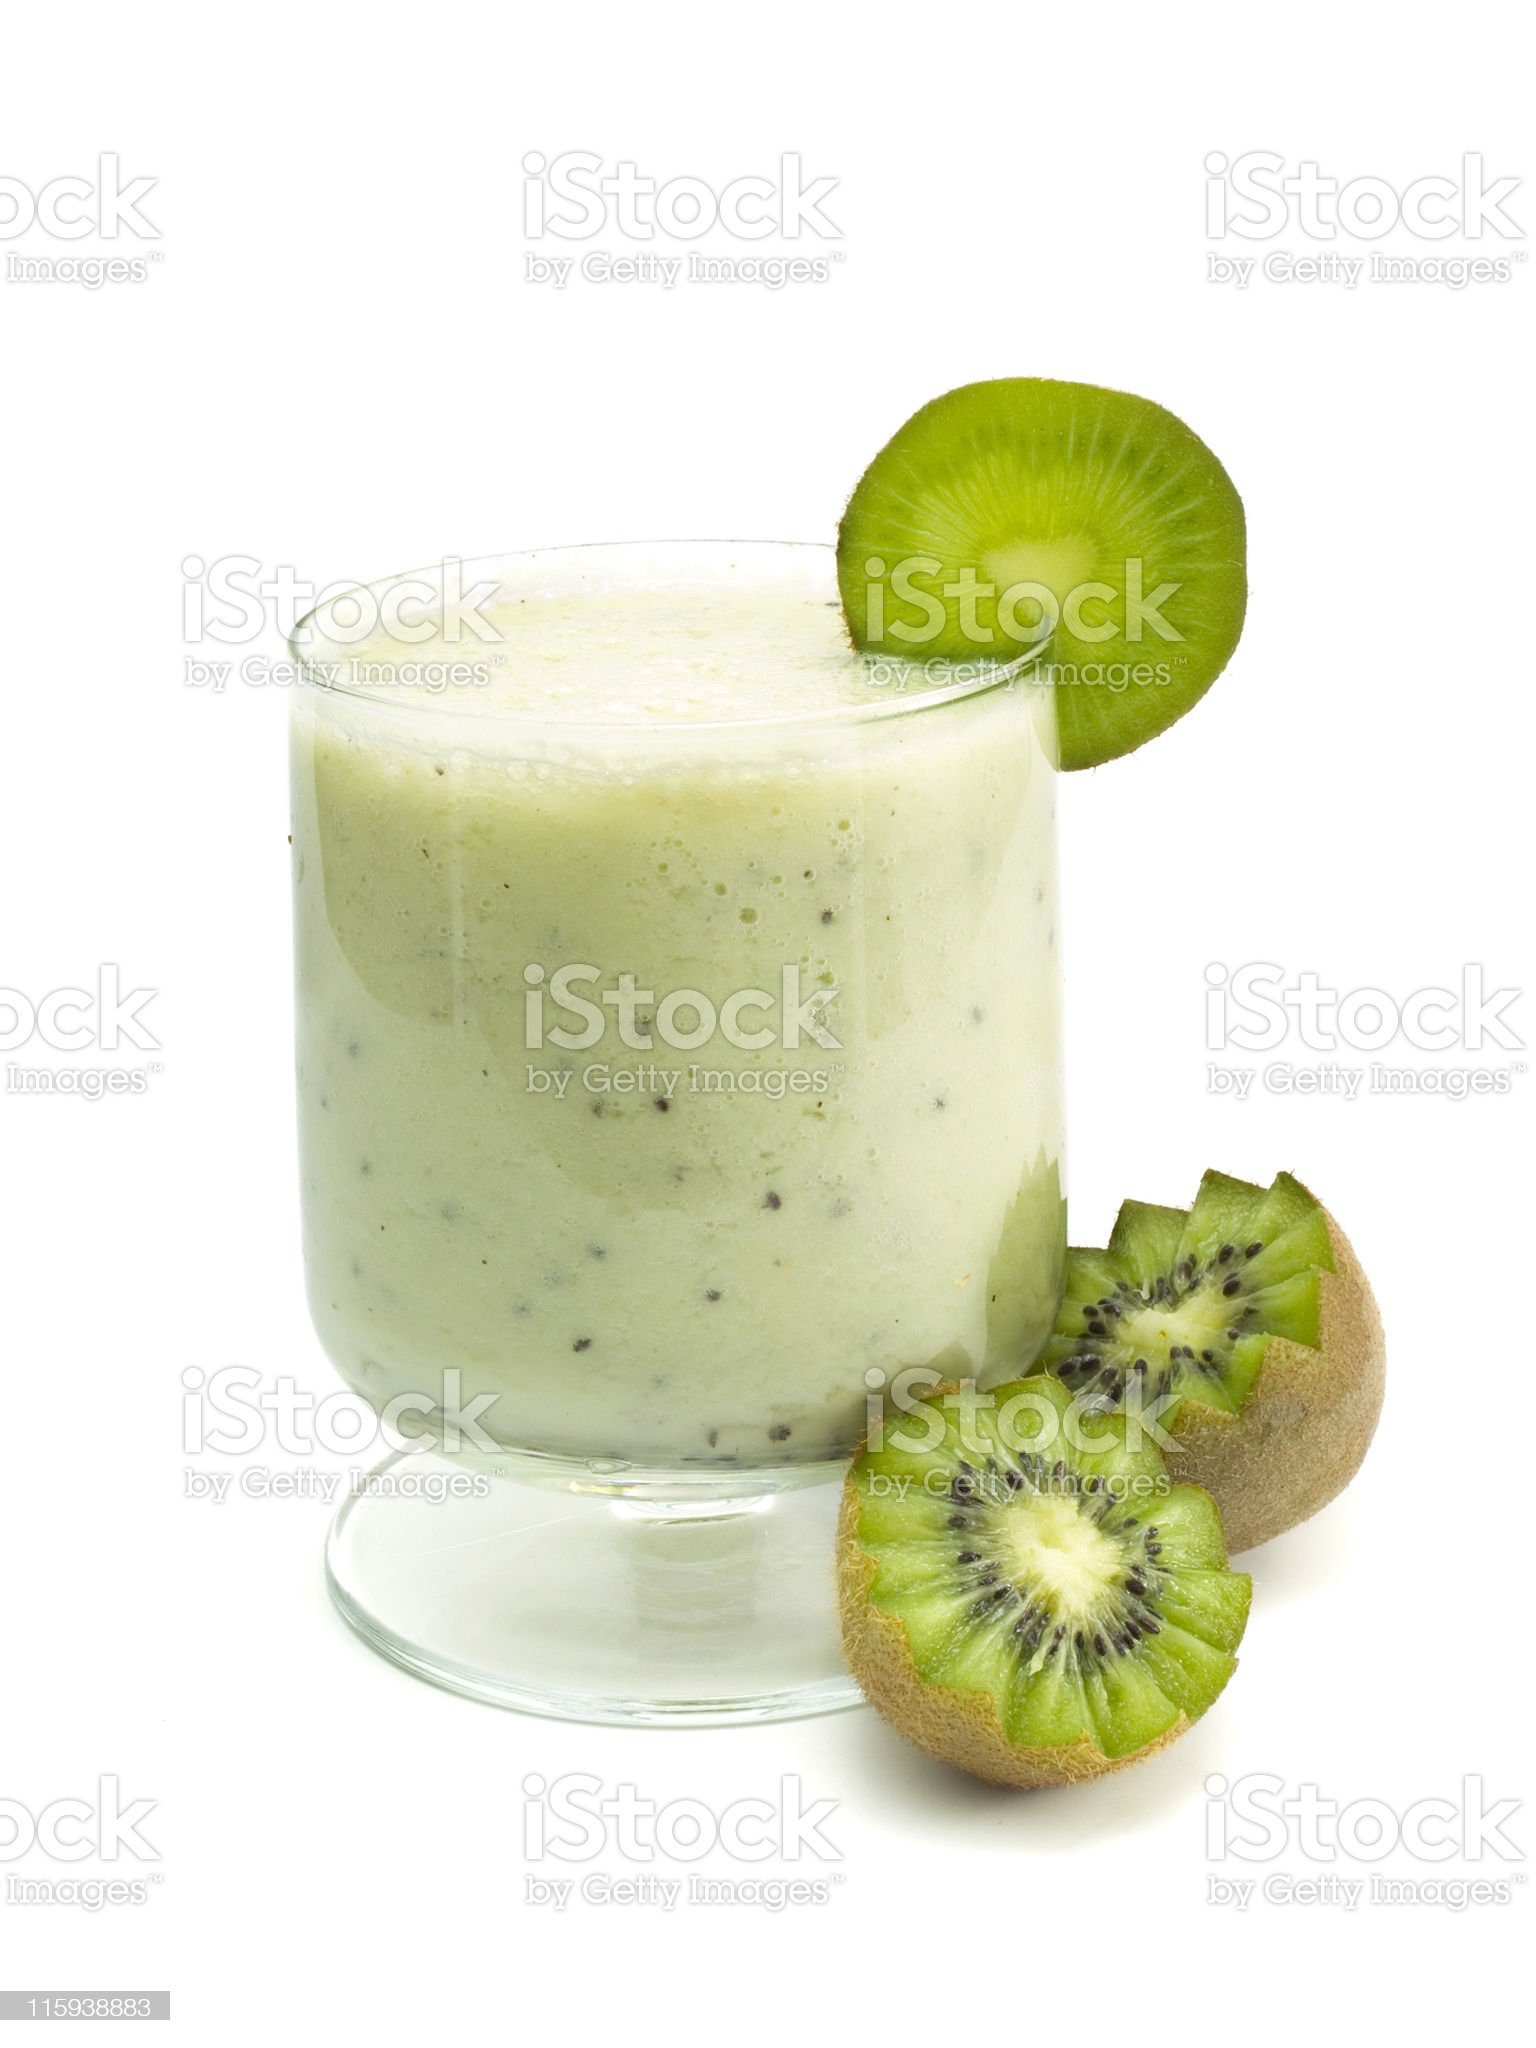 Cocktails Collection - Kiwi Smoothie royalty-free stock photo